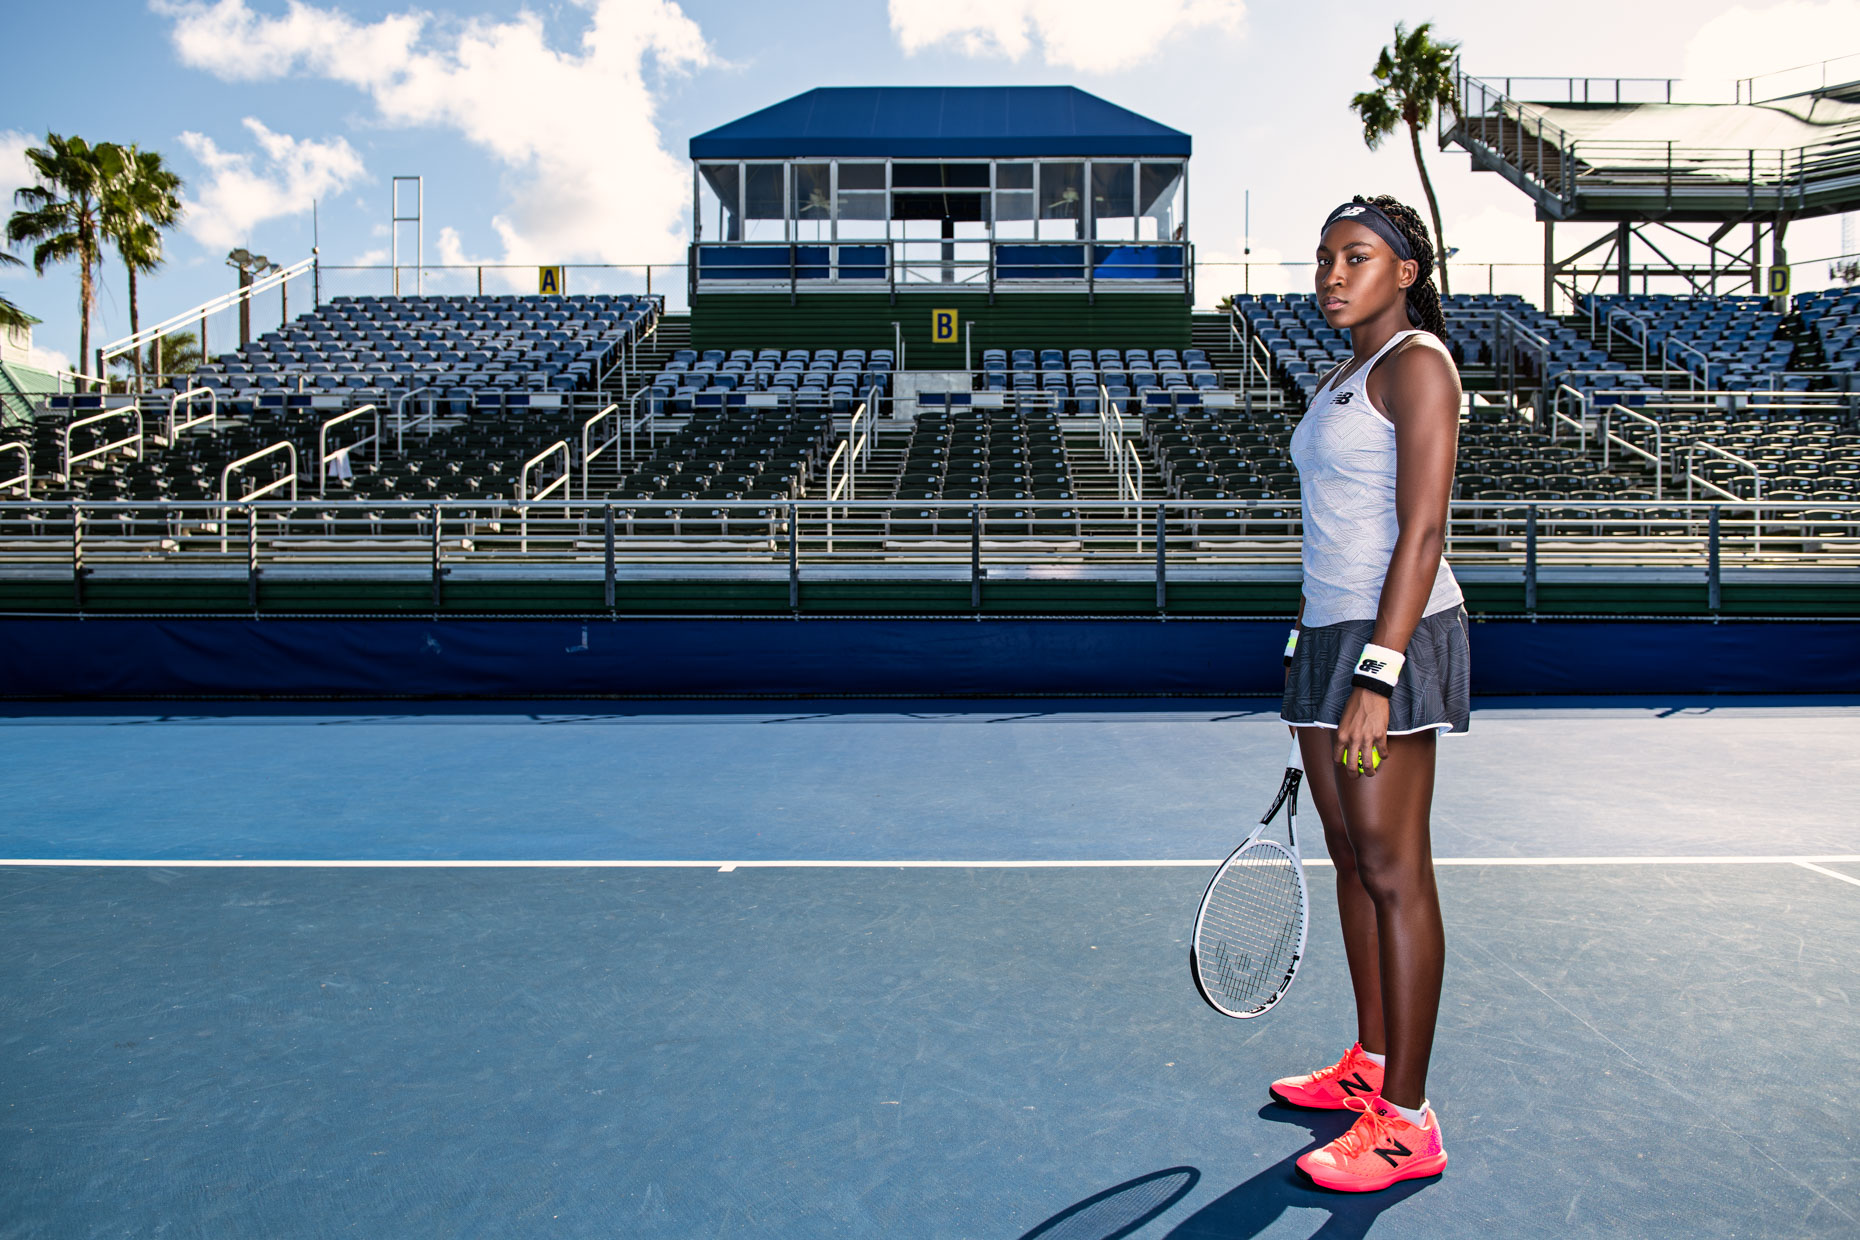 Coco Gauff - Tennis photoshoot - Delray Beach, FL - US Open - New Balance 7